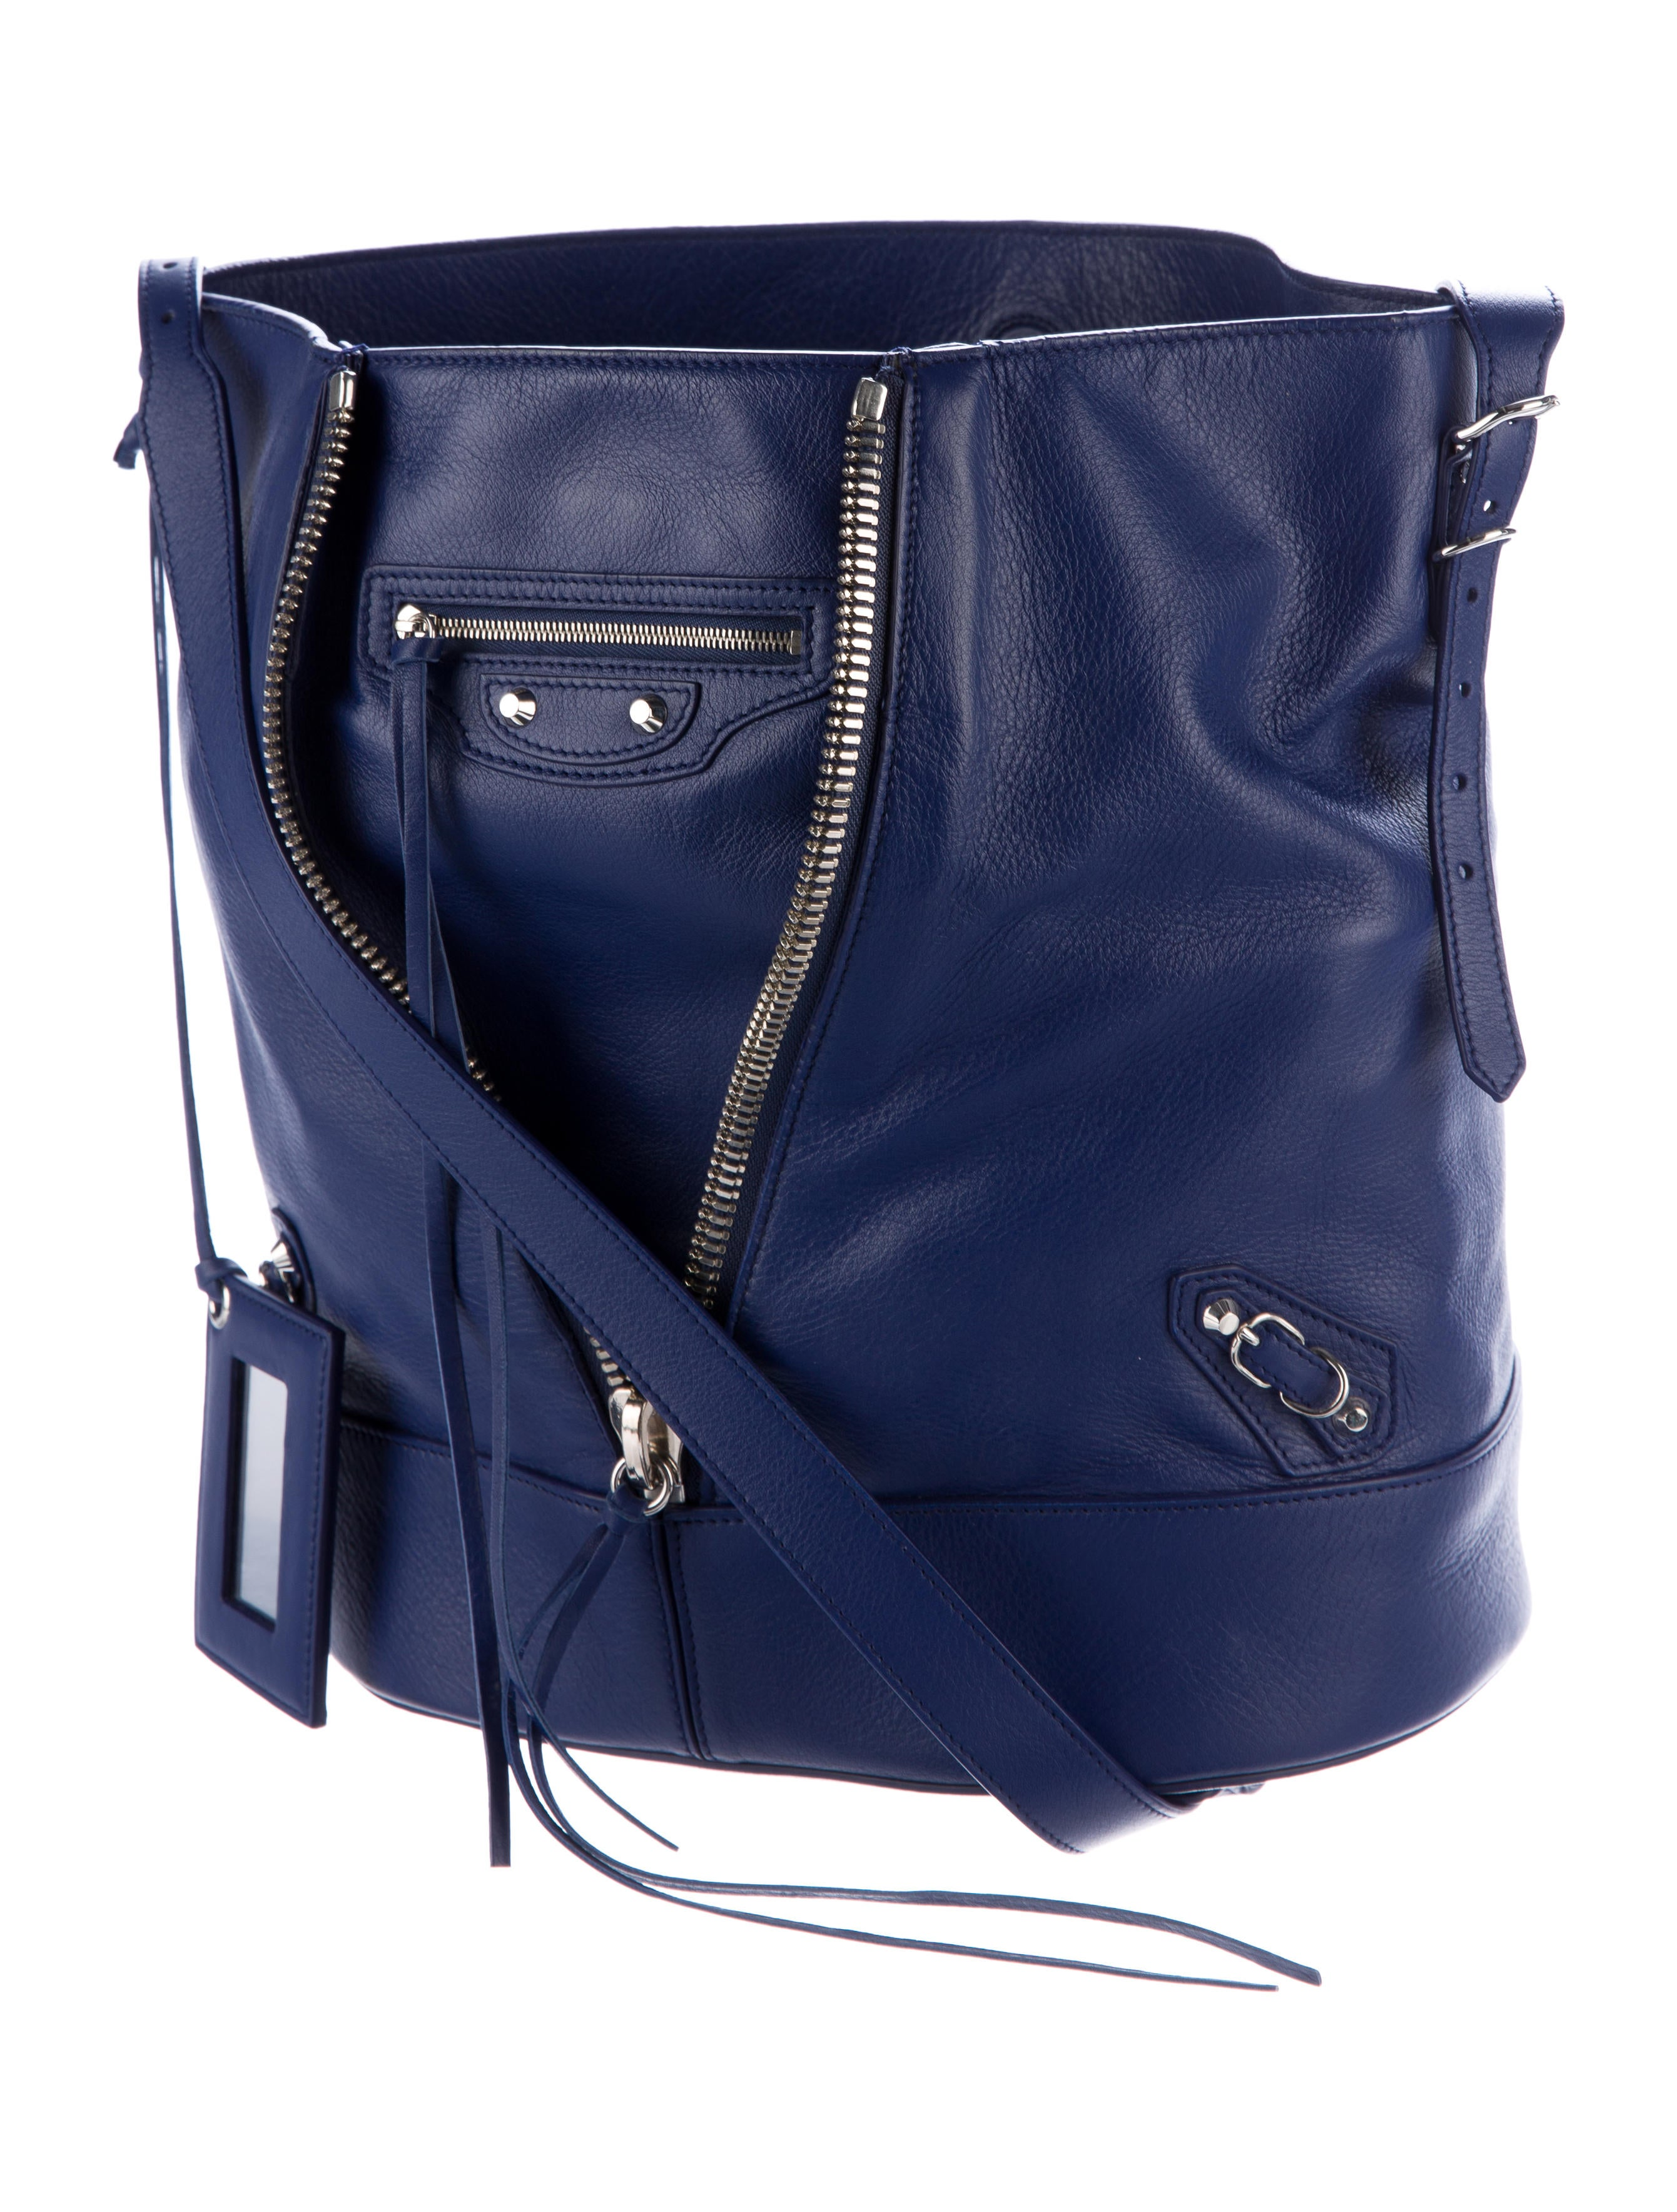 Kenoor Leather Drawstring Bucket Bag Retro Handbags Shoulder Bag Purses Crossbody Bags For Women with Long Shoulder Strap. by Kenoor. $ $ 64 97 Prime. FREE Shipping on eligible orders. Some colors are Prime eligible. out of 5 stars See .